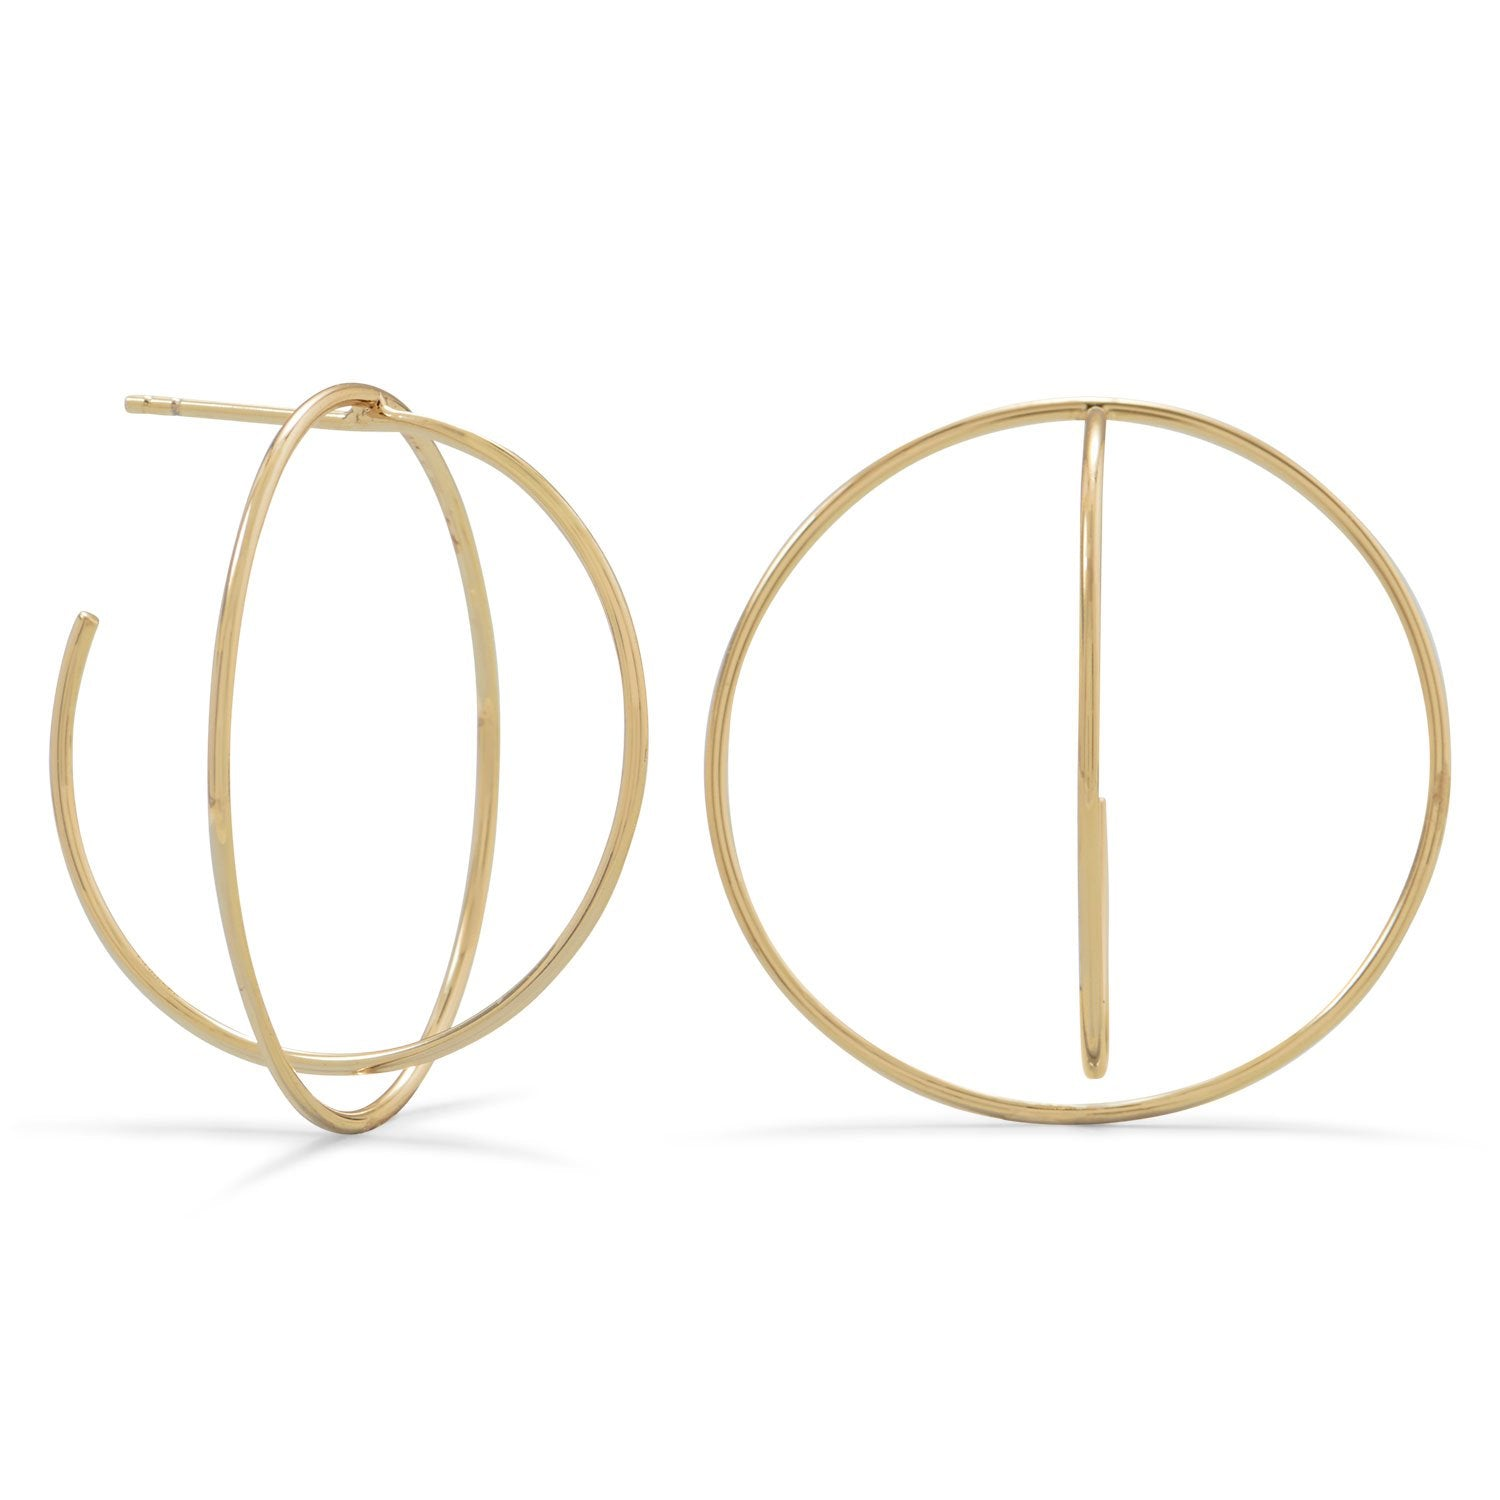 Criss-Cross Hoops, Earrings, [GLITIC], [Personalized_Jewelry], [Vegan_Bags]